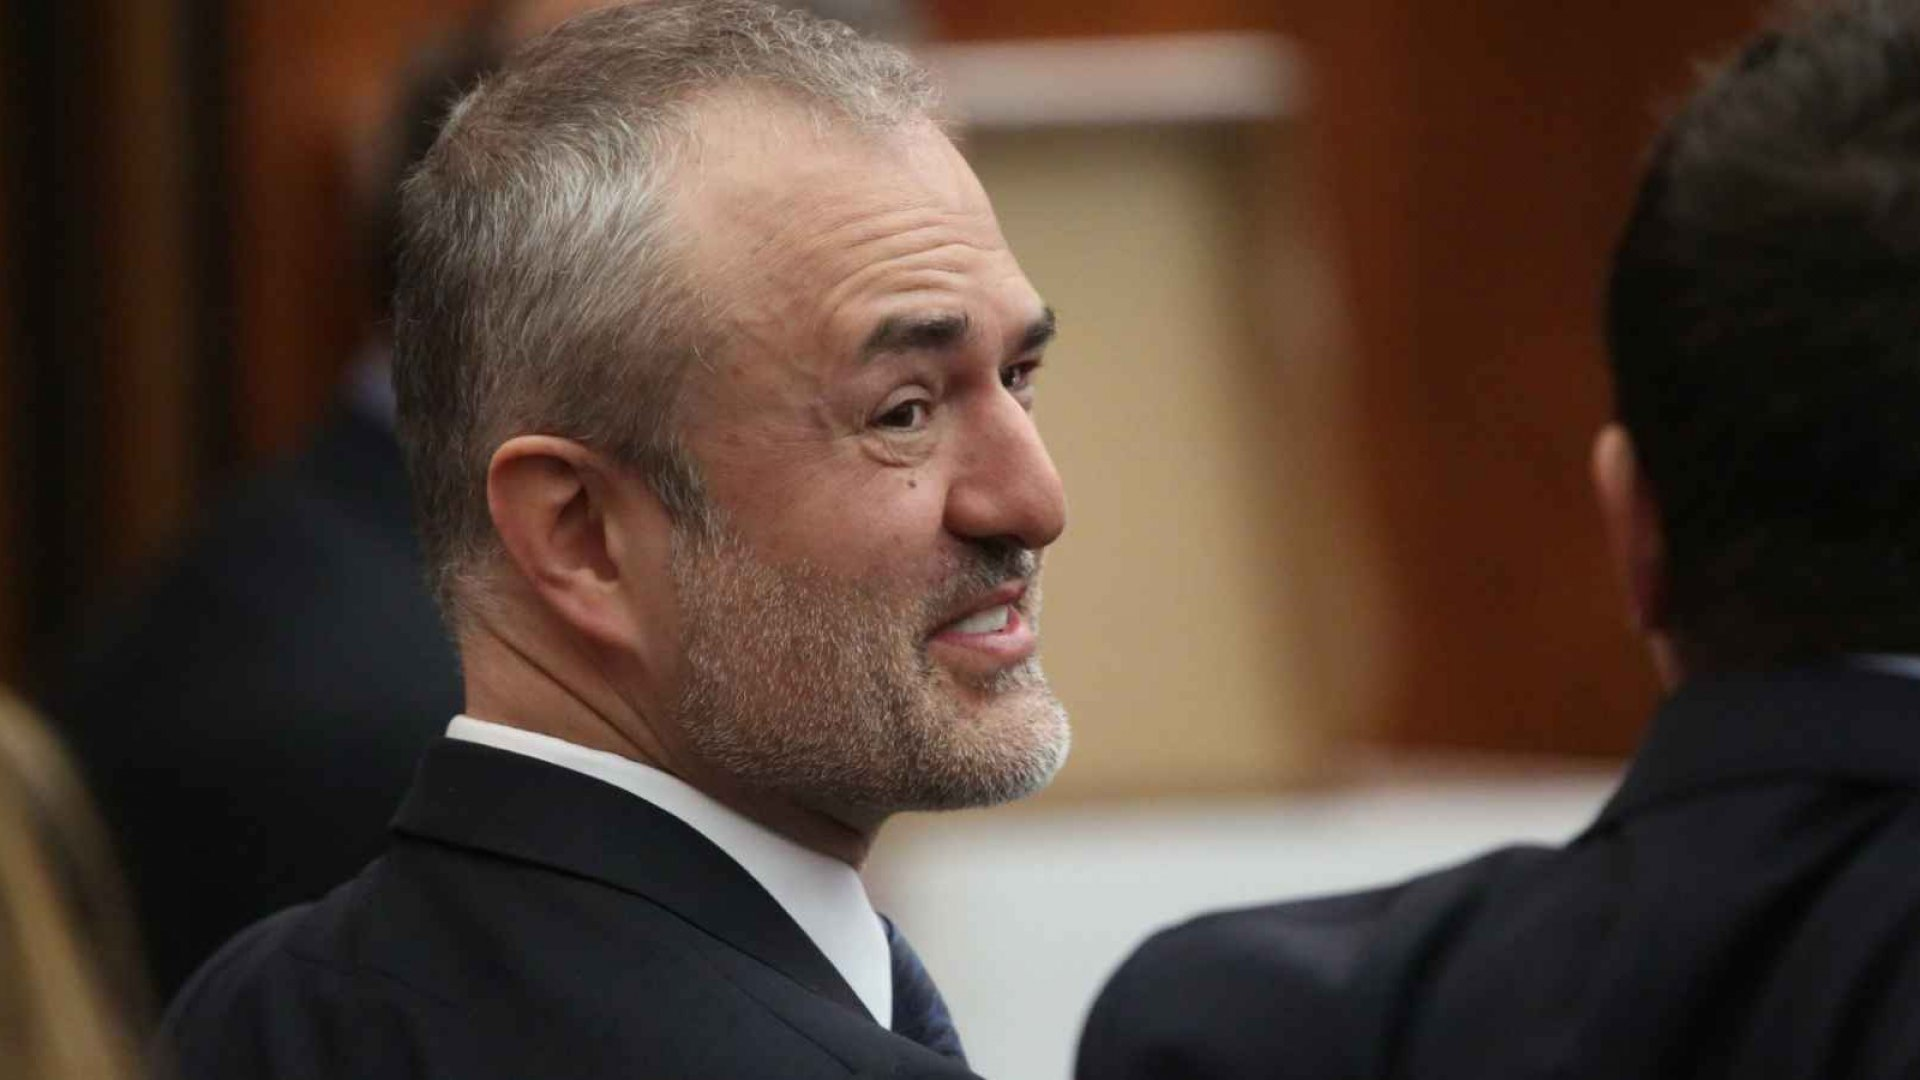 Gawker Files for Chapter 11 Bankruptcy Protection